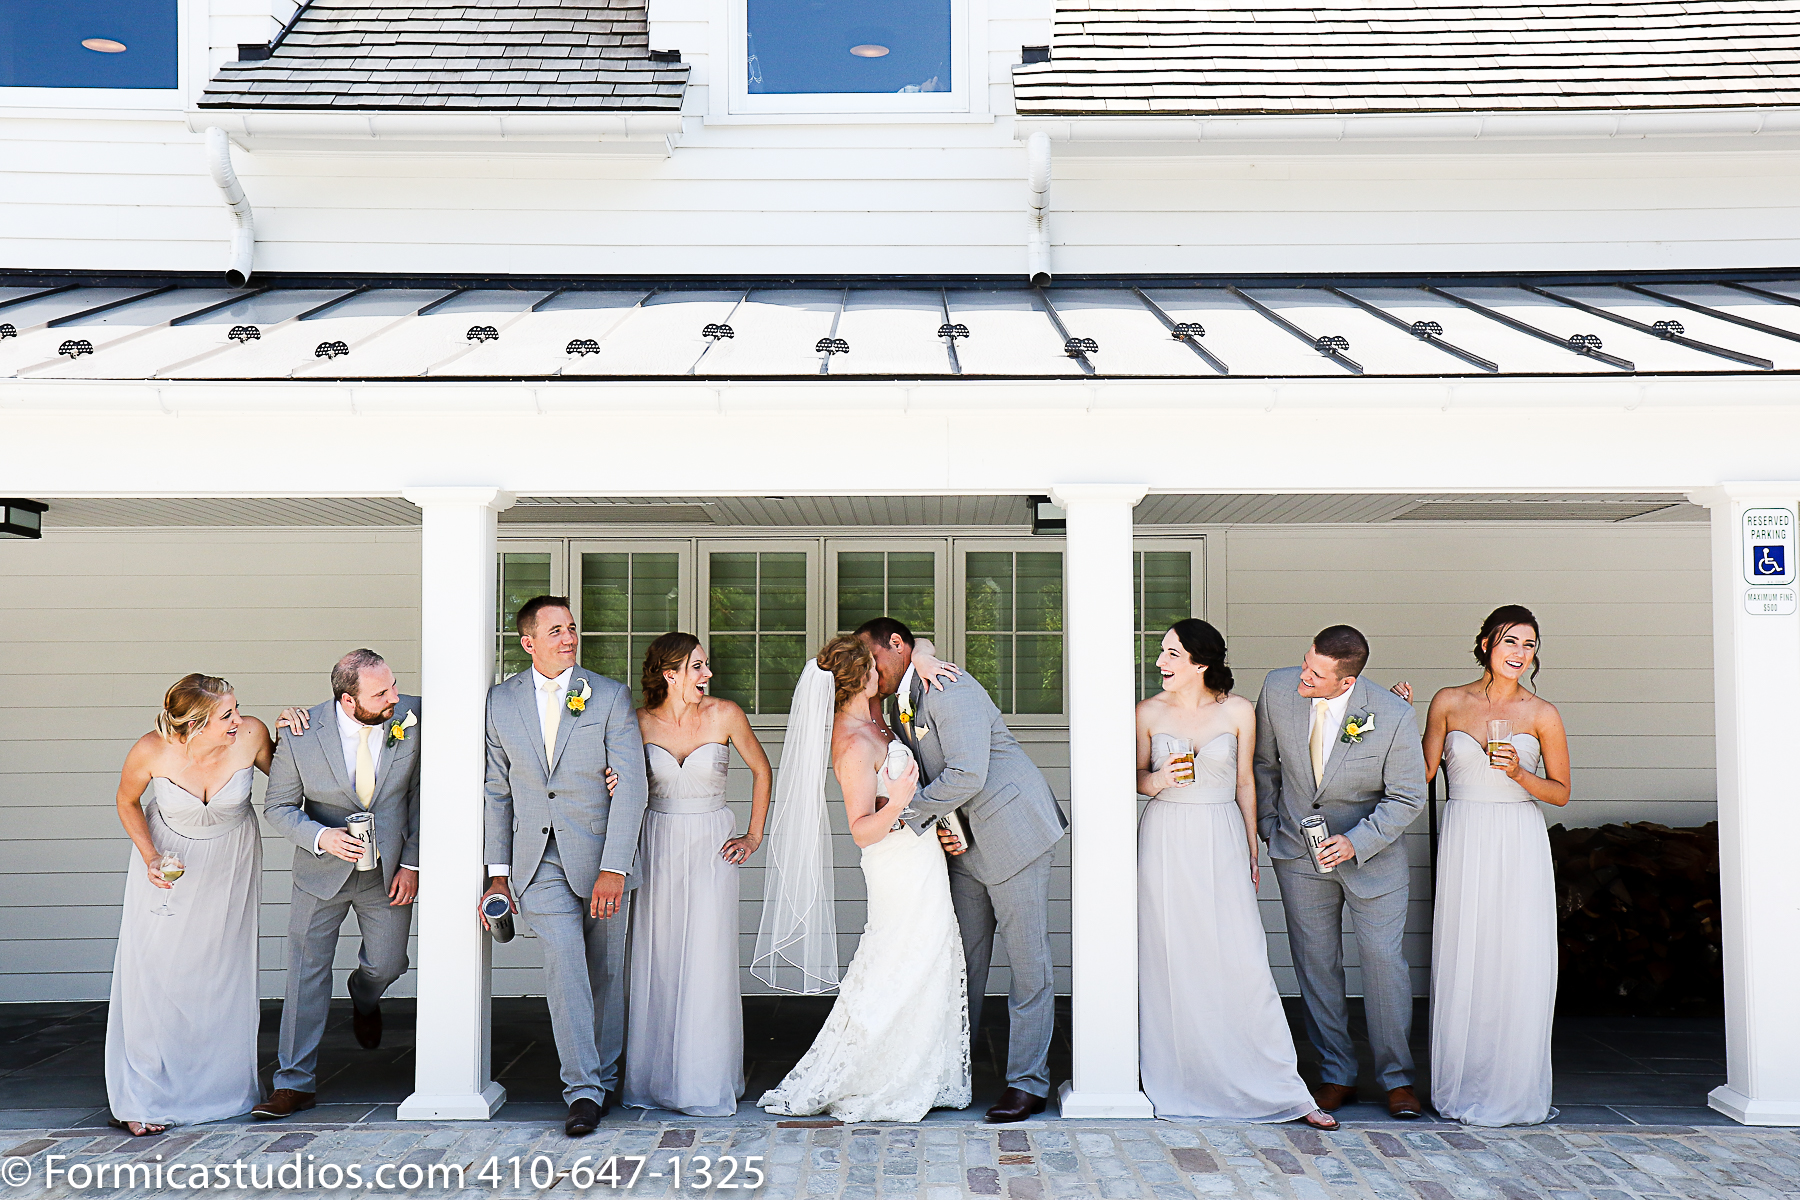 bride and groom kiss under awning while wedding party watches